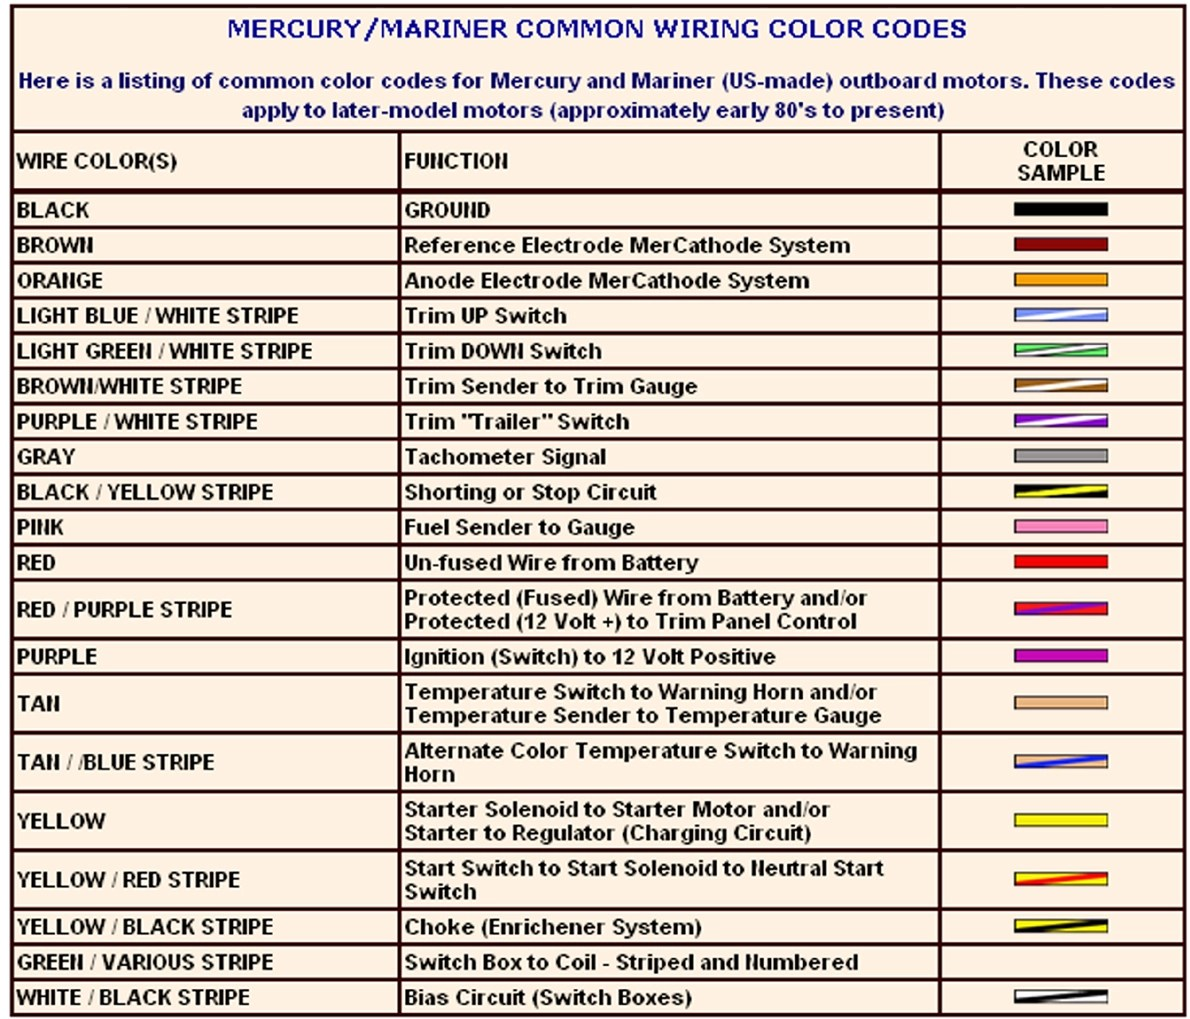 1995 saturn sl1 radio wiring diagram sagittal brain labeled sc2 wire toyskids co car harness color code audio codes sl2 stereo